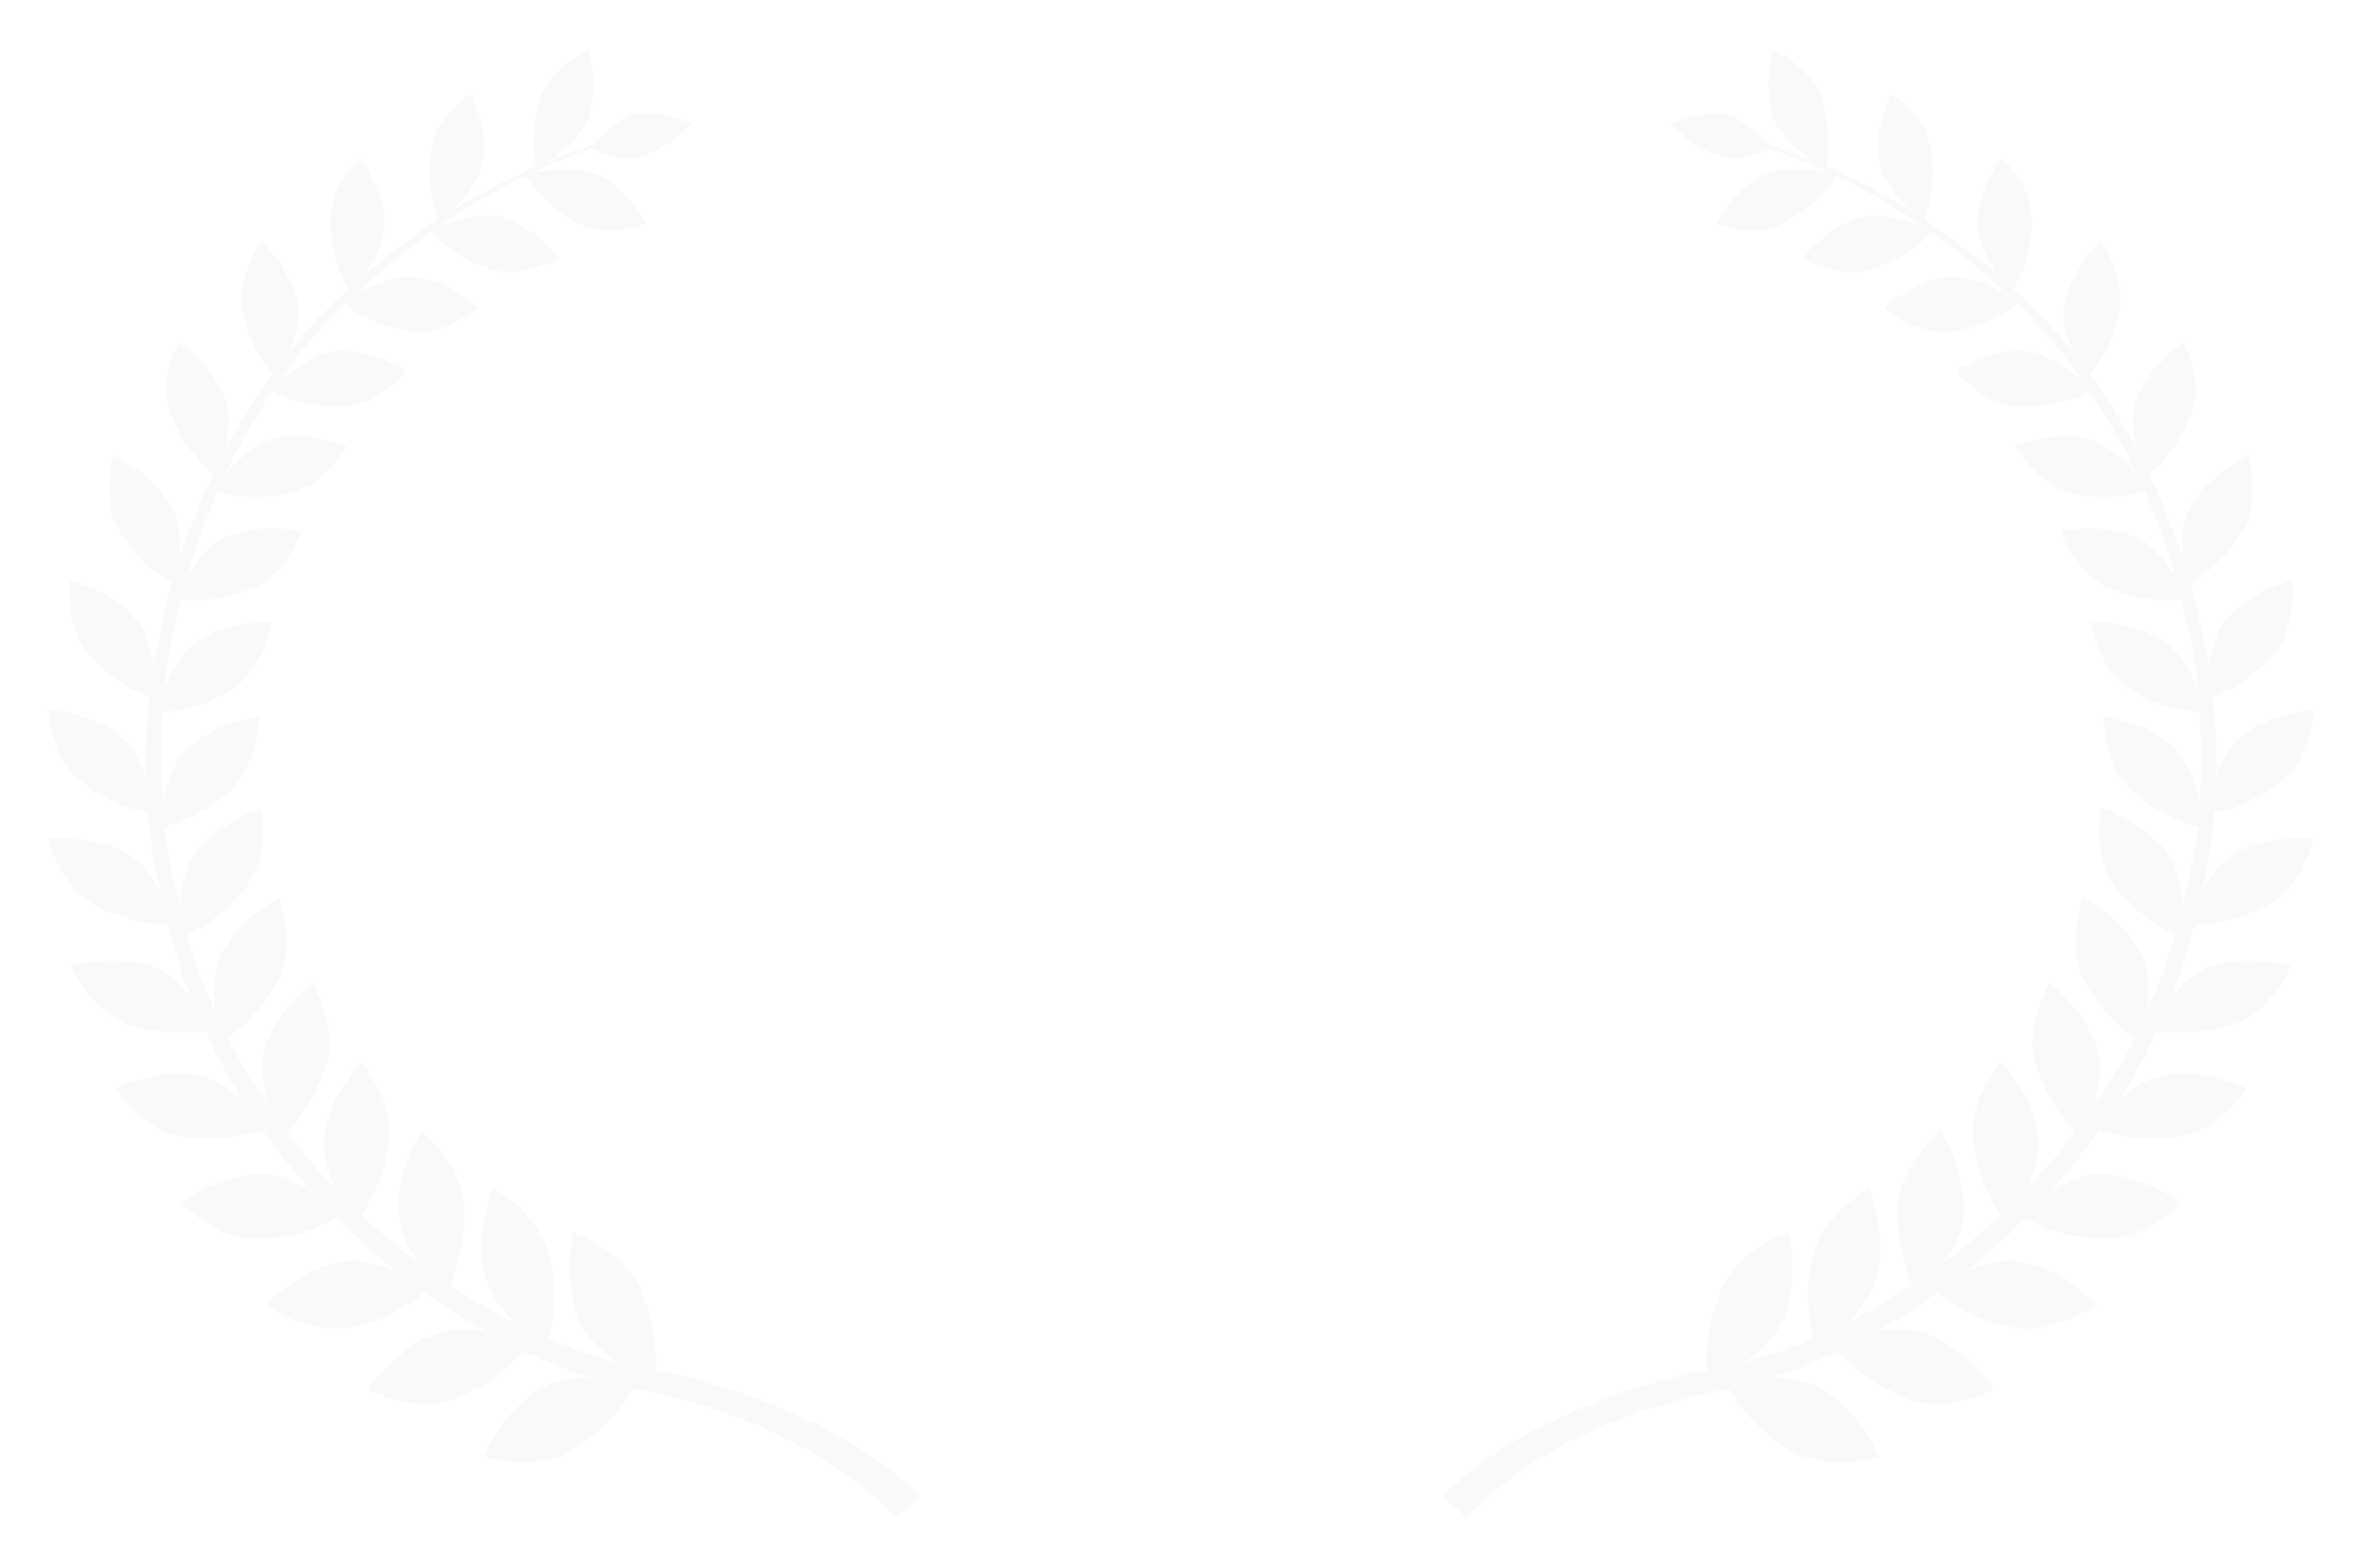 OFFICIALSELECTION-PUFF-2019_WHITE.png